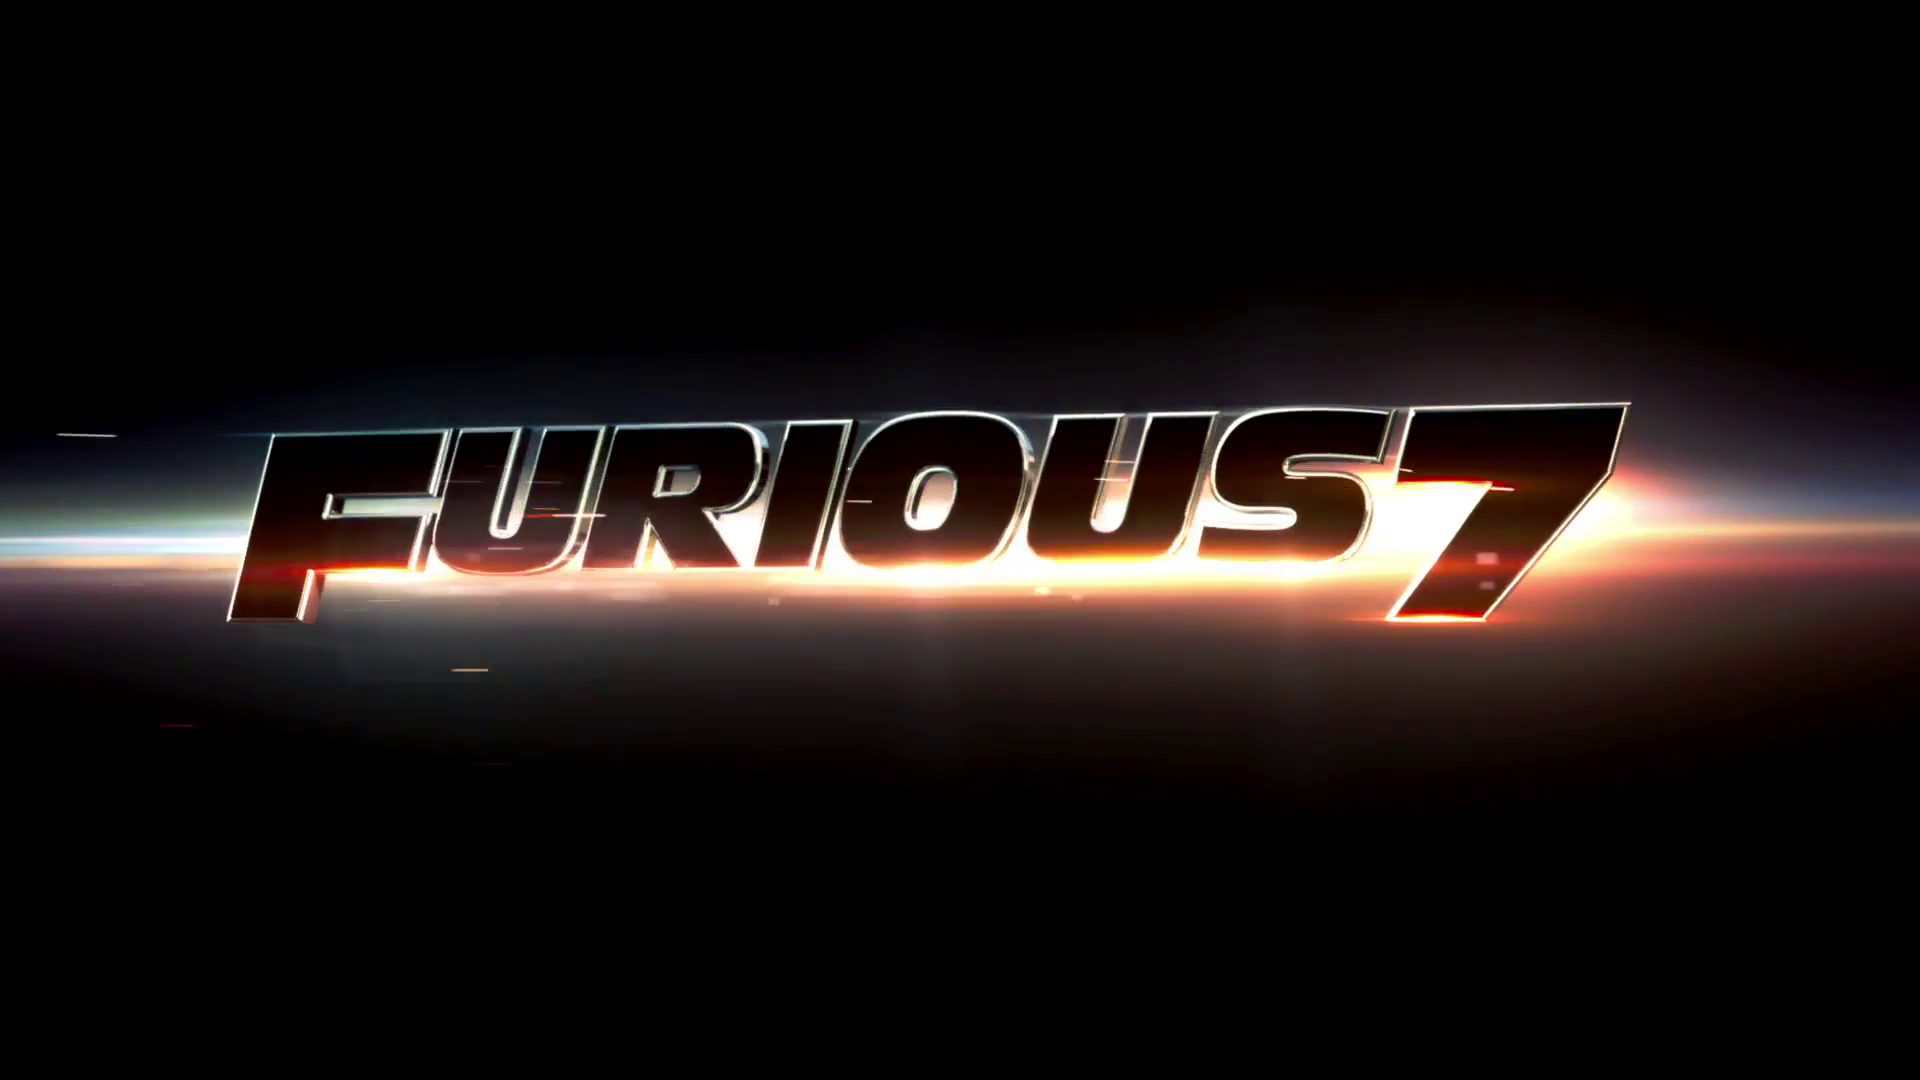 Fast And Furious 7 Wallpaper Free Download Fast And Furious Car